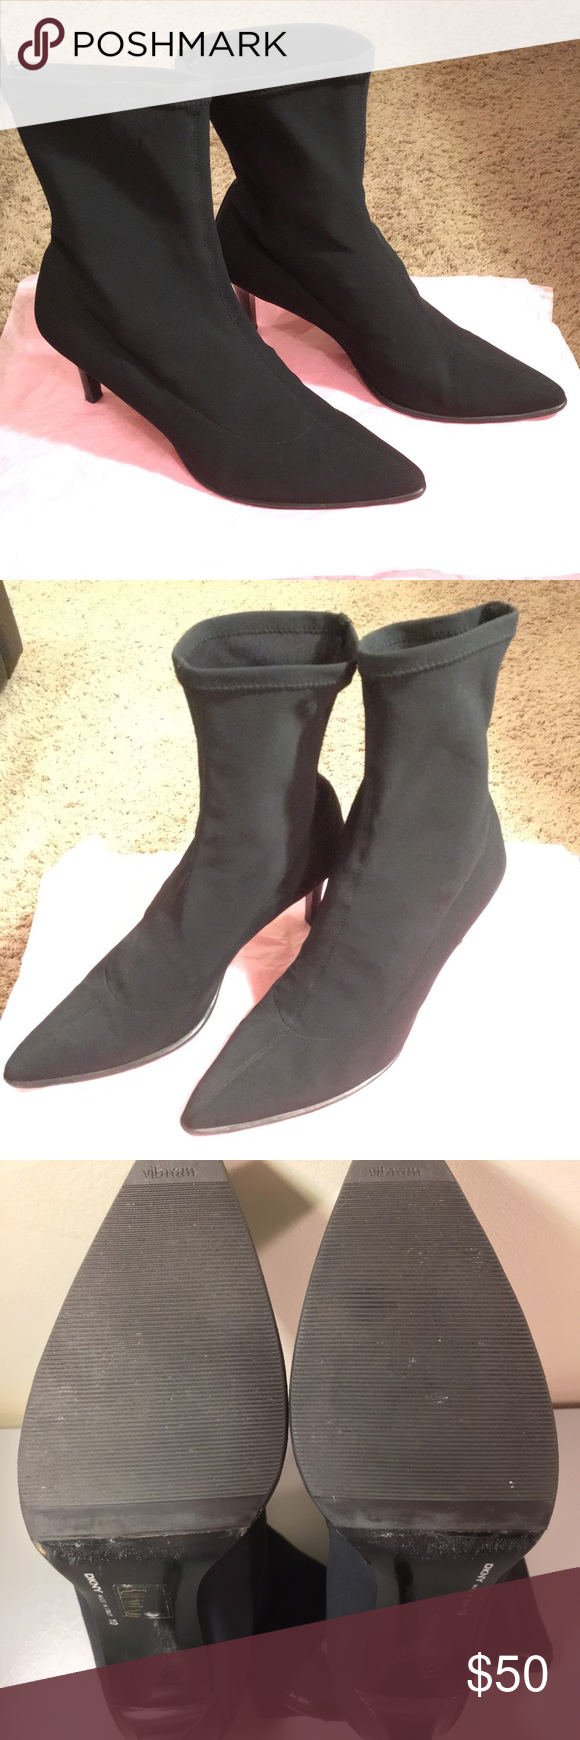 DKNY BLACK POINTY HIGH HEEL BOOTS POLYESTER BLEND This DKNY Boots is Great condition . No Box  Designer:  Dkny  Style:  Pointy Black  Material: Polyester Blend  Size: 10 DKYN Shoes Ankle Boots & Booties